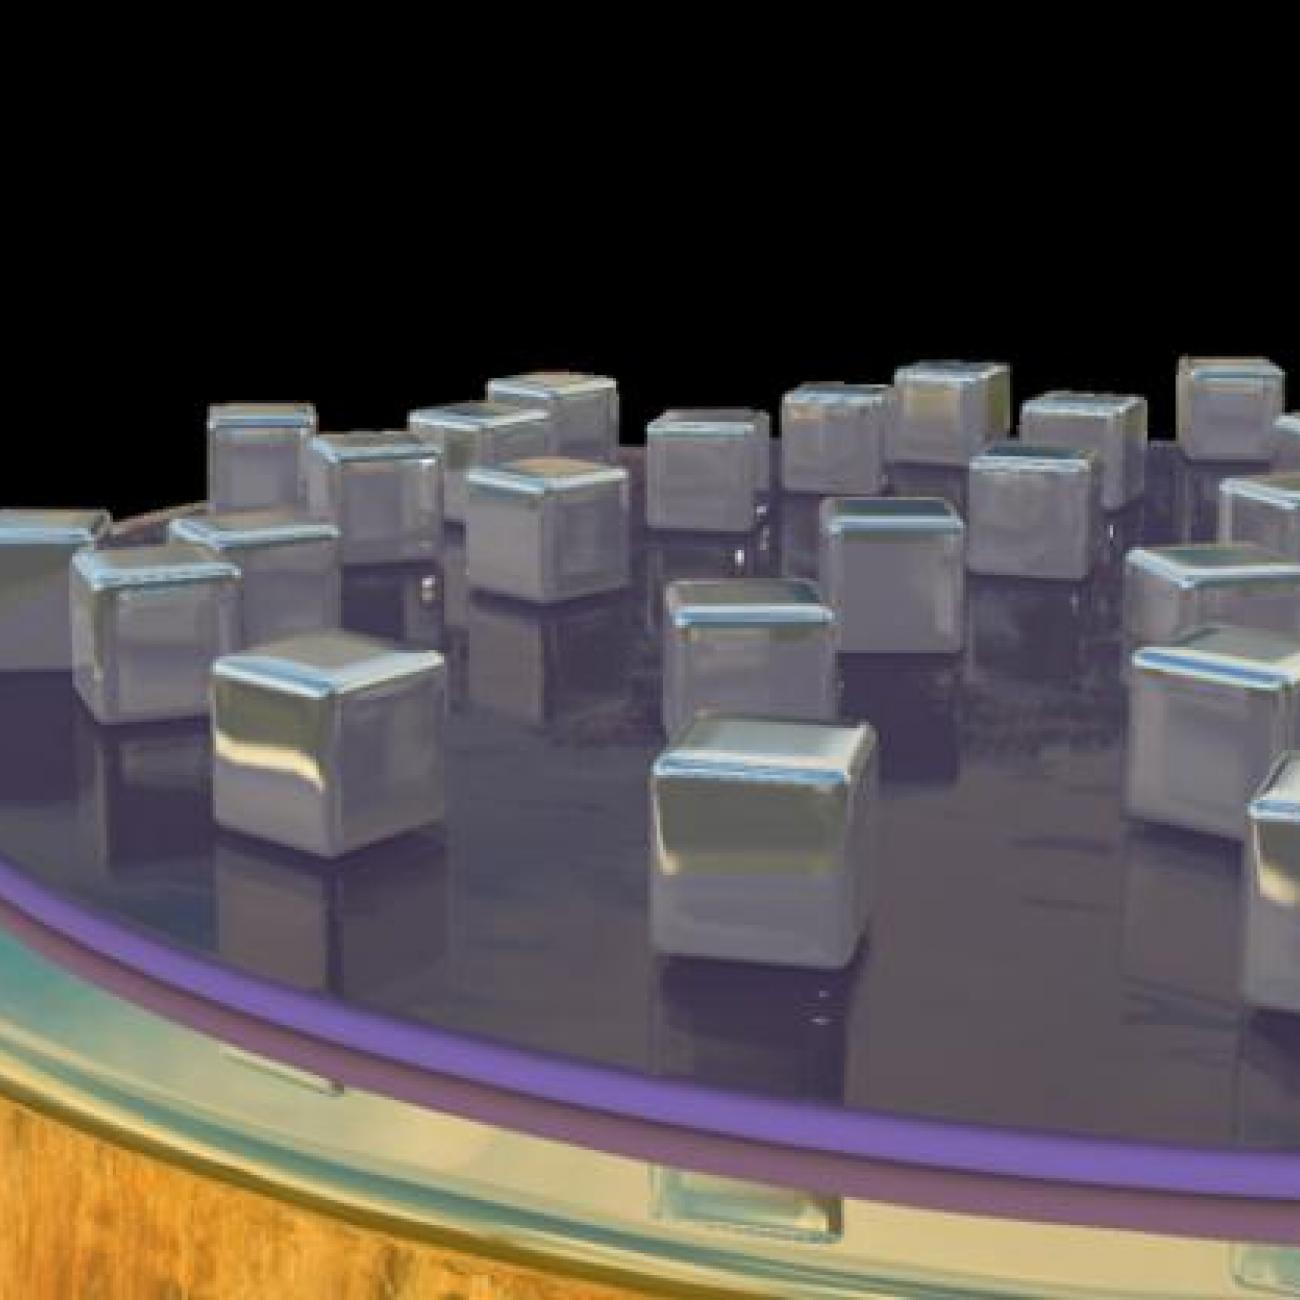 An artistic rendering of a new type of hyperspectral imaging detector. Depending on their size and spacing, nanocubes sitting on top of a thin layer of gold trap specific frequencies of light, which heats up the materials beneath to create an electronic signal.